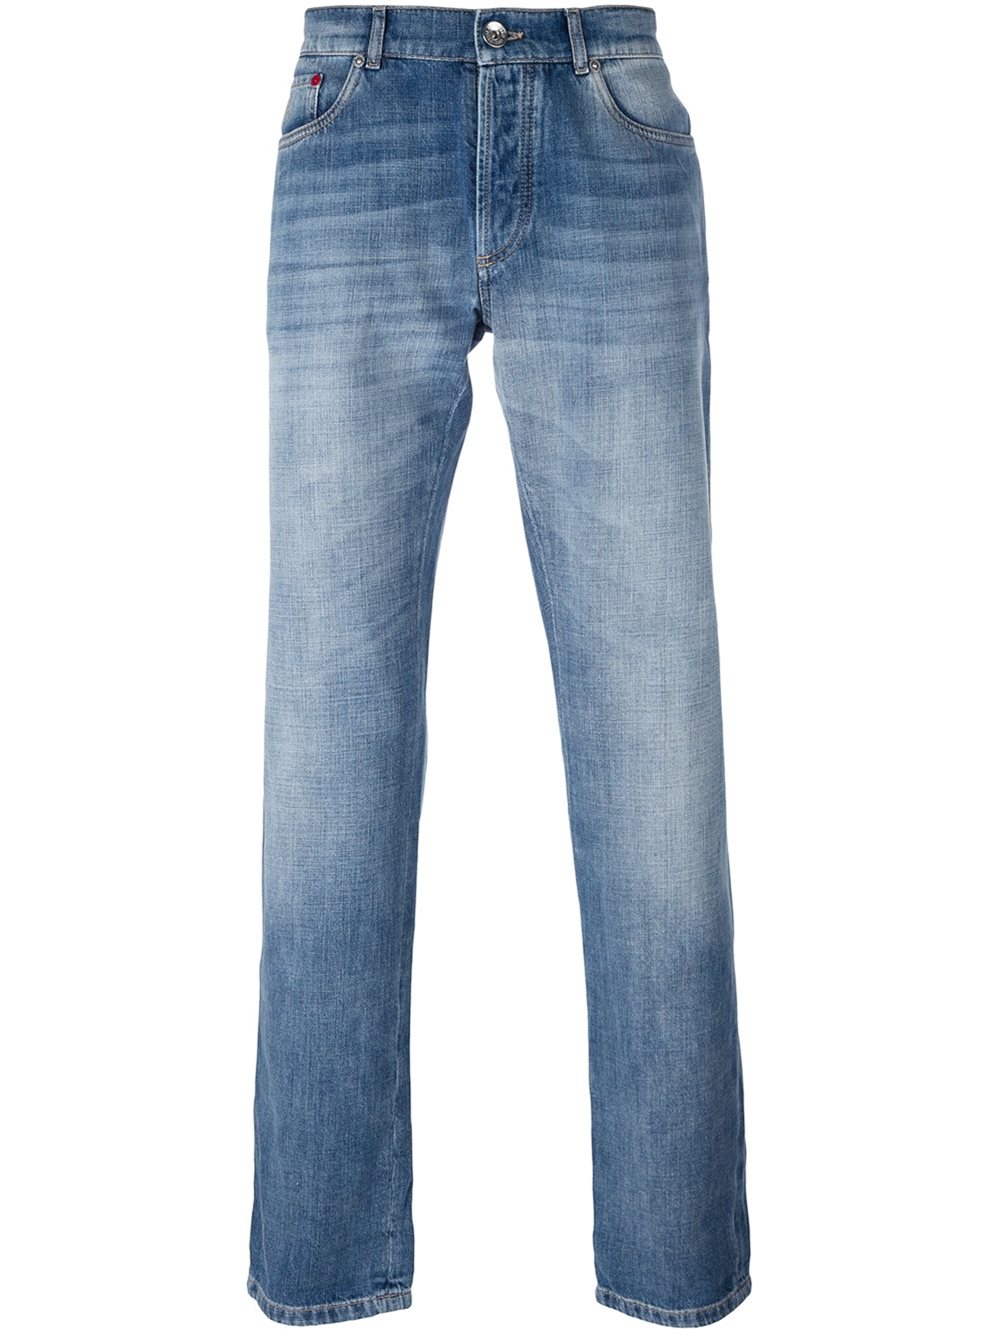 Find mens denim jeans stone washed at ShopStyle. Shop the latest collection of mens denim jeans stone washed from the most popular stores - all in one.